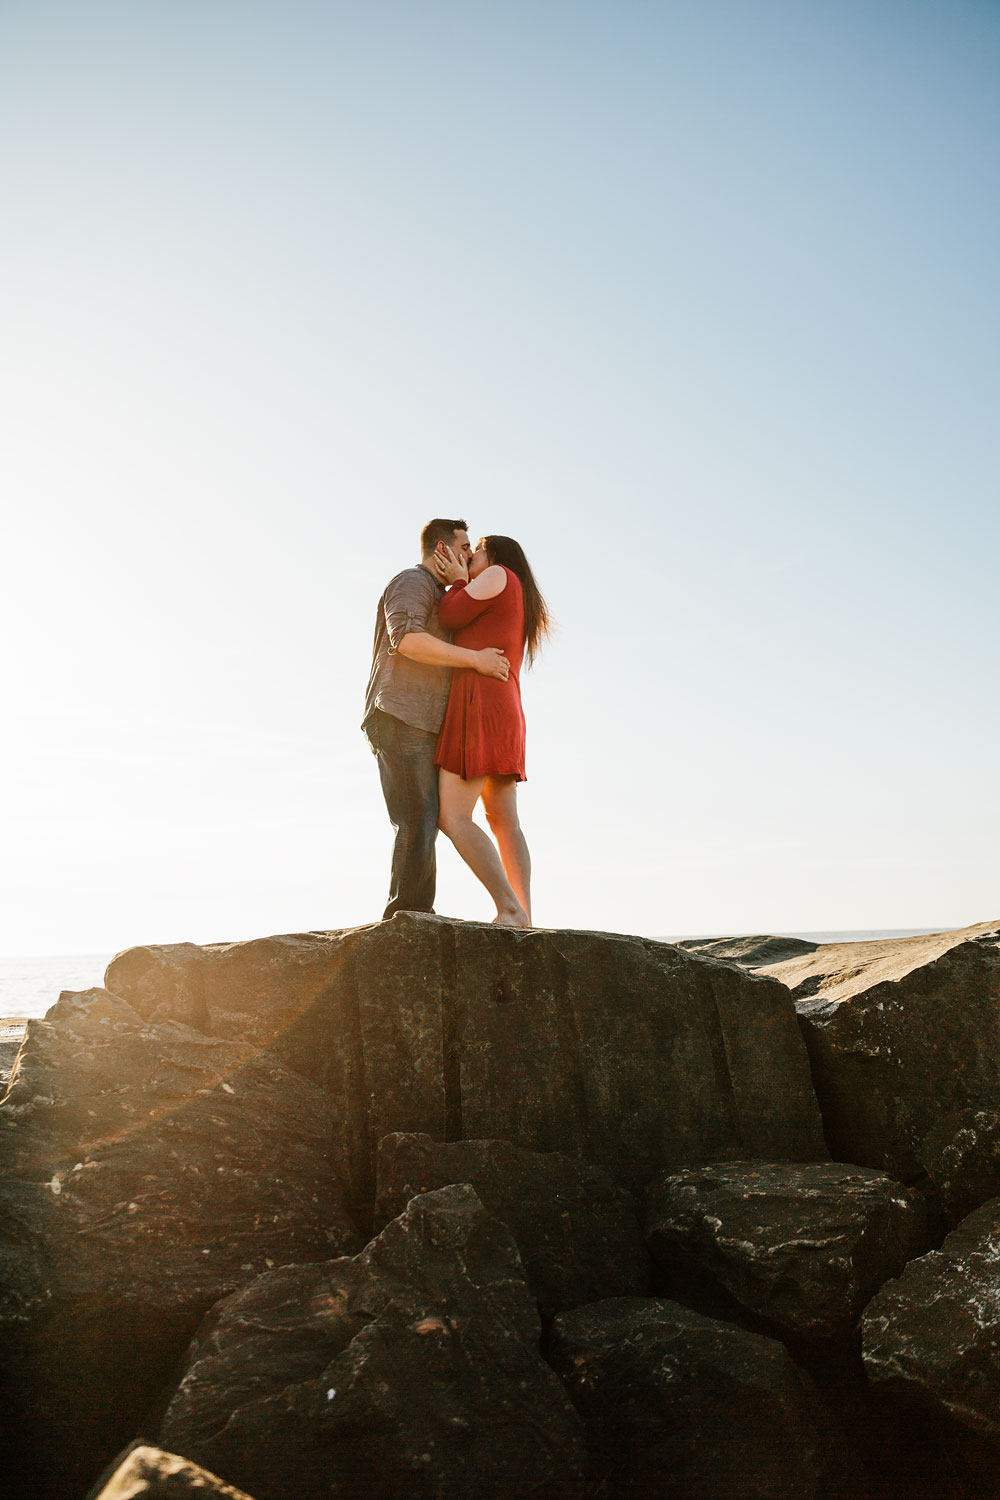 edgewater-beach-engagement-session-wendy-park-cleveland-wedding-photographers-7.jpg